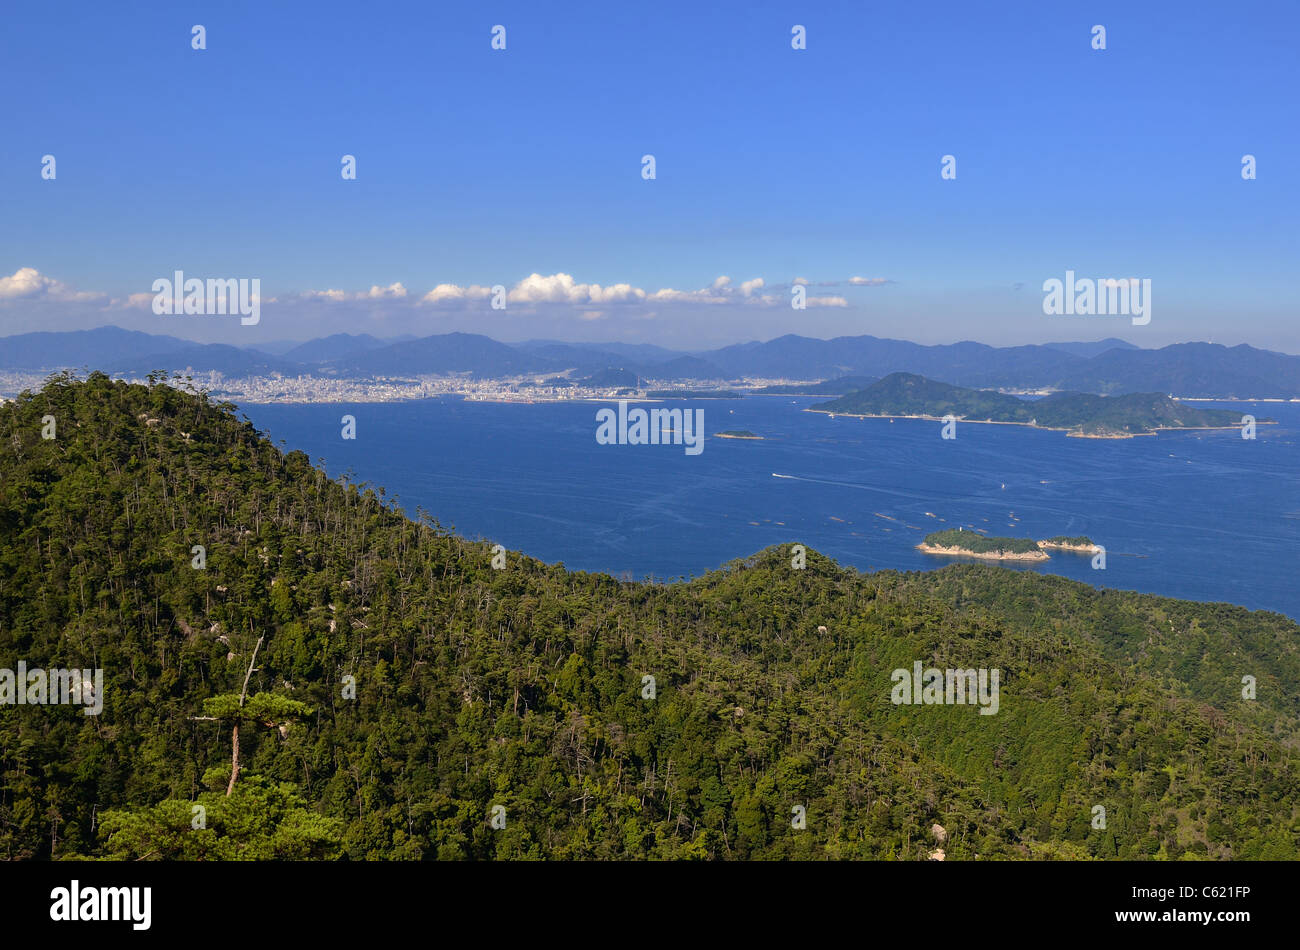 Seto Inland Sea in Japan as seen from Mt. Misen on Itsukushima Island. - Stock Image